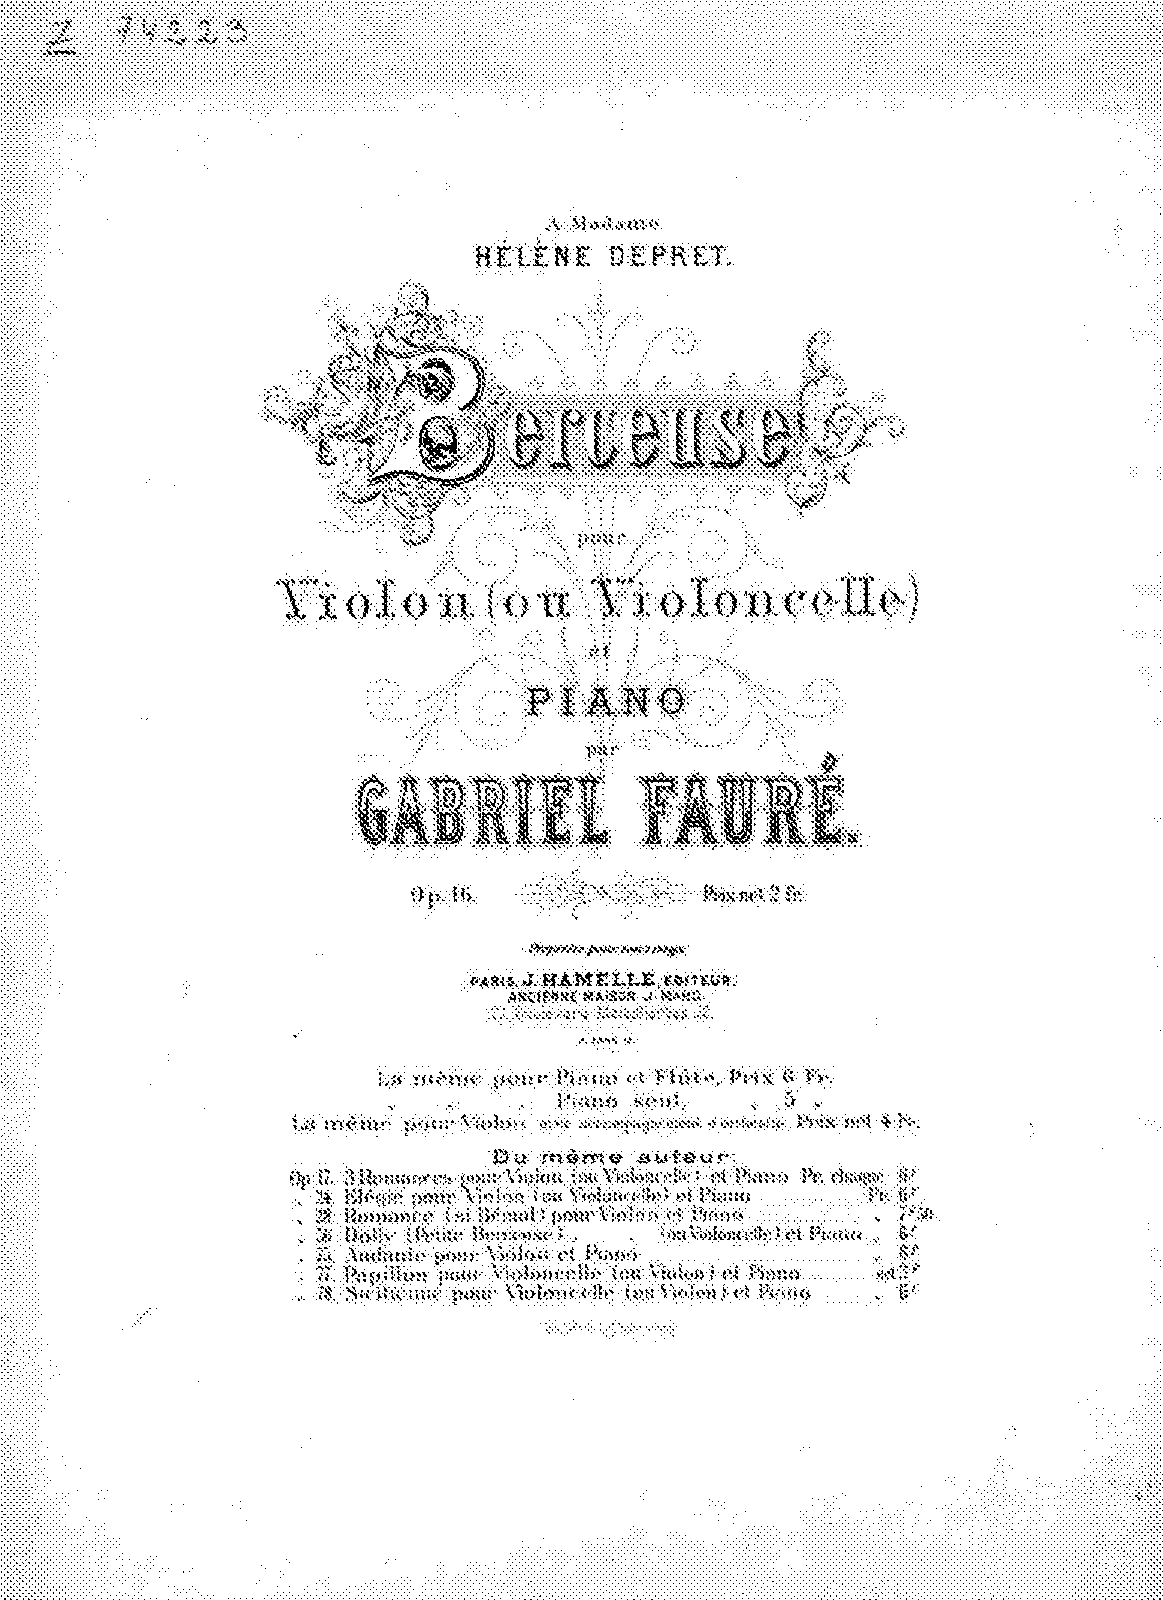 Faure - Op.16 - Berceuse for Vln and Pno.pdf